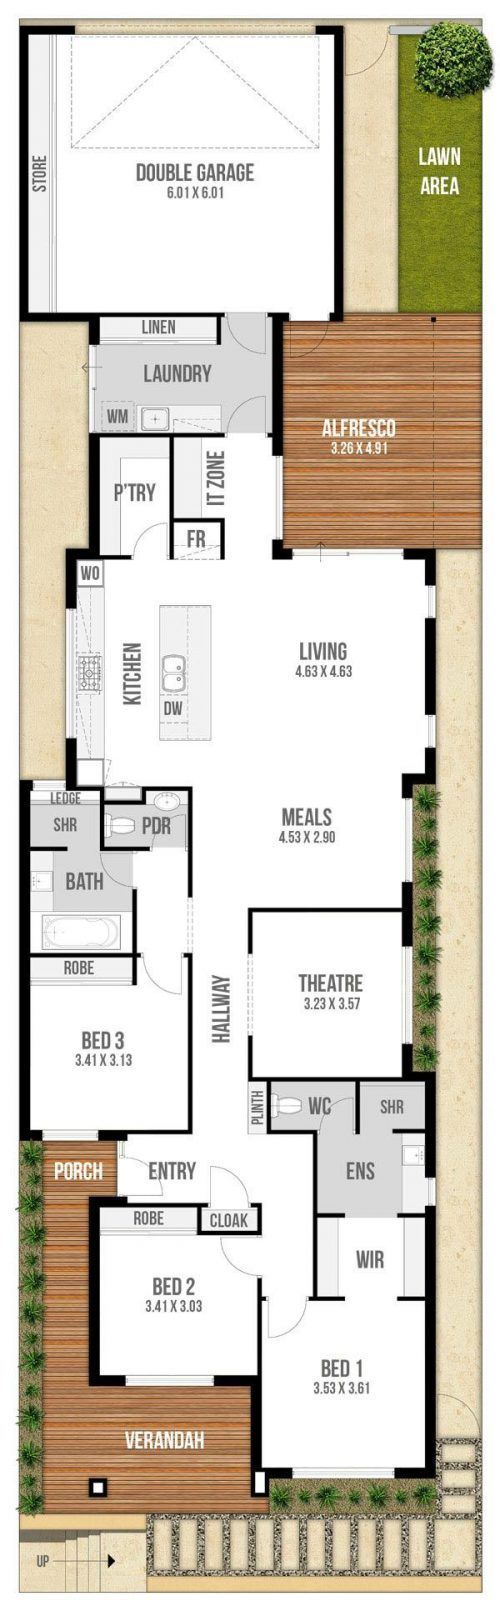 Floor Plan Friday: Narrow block with garage rear lane access ... on narrow home plans with garage, cabin plans with attached garage, foundation with attached garage, narrow lot house plans with side entry garage, narrow lot house plans with detached garage, narrow lot house plans with three car garage,